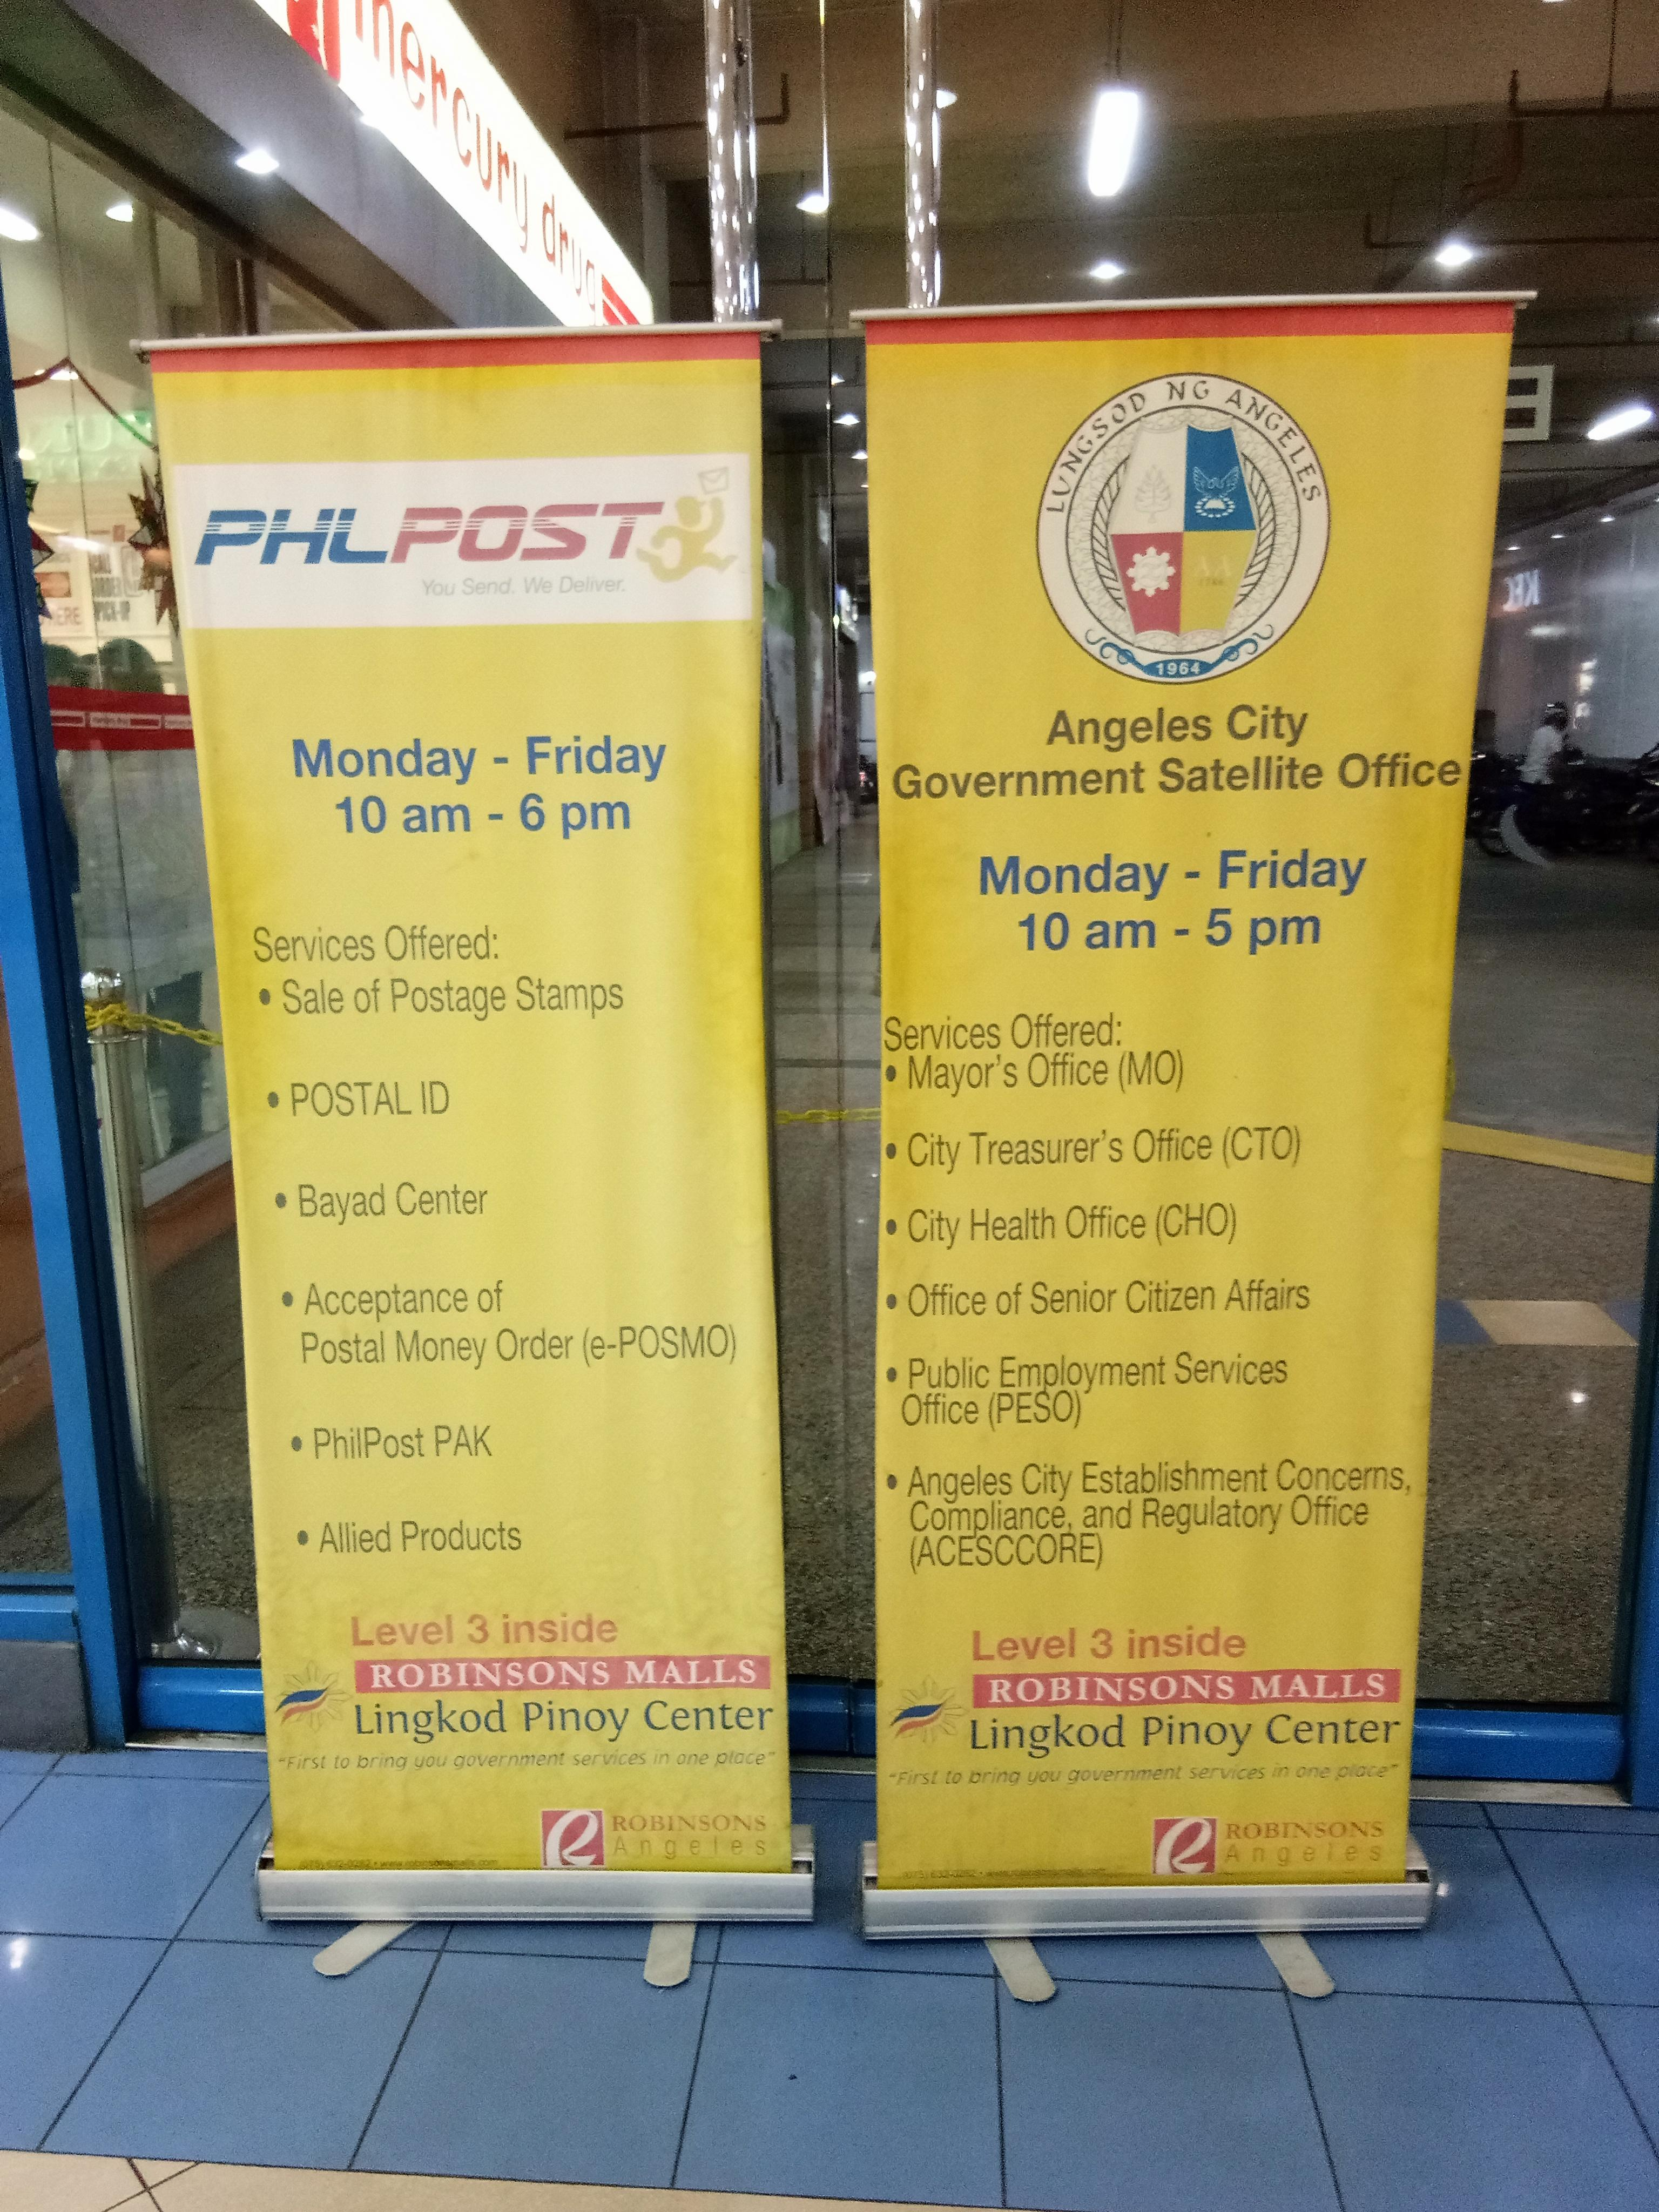 PHLPOST and Angeles City Government Satellite Office